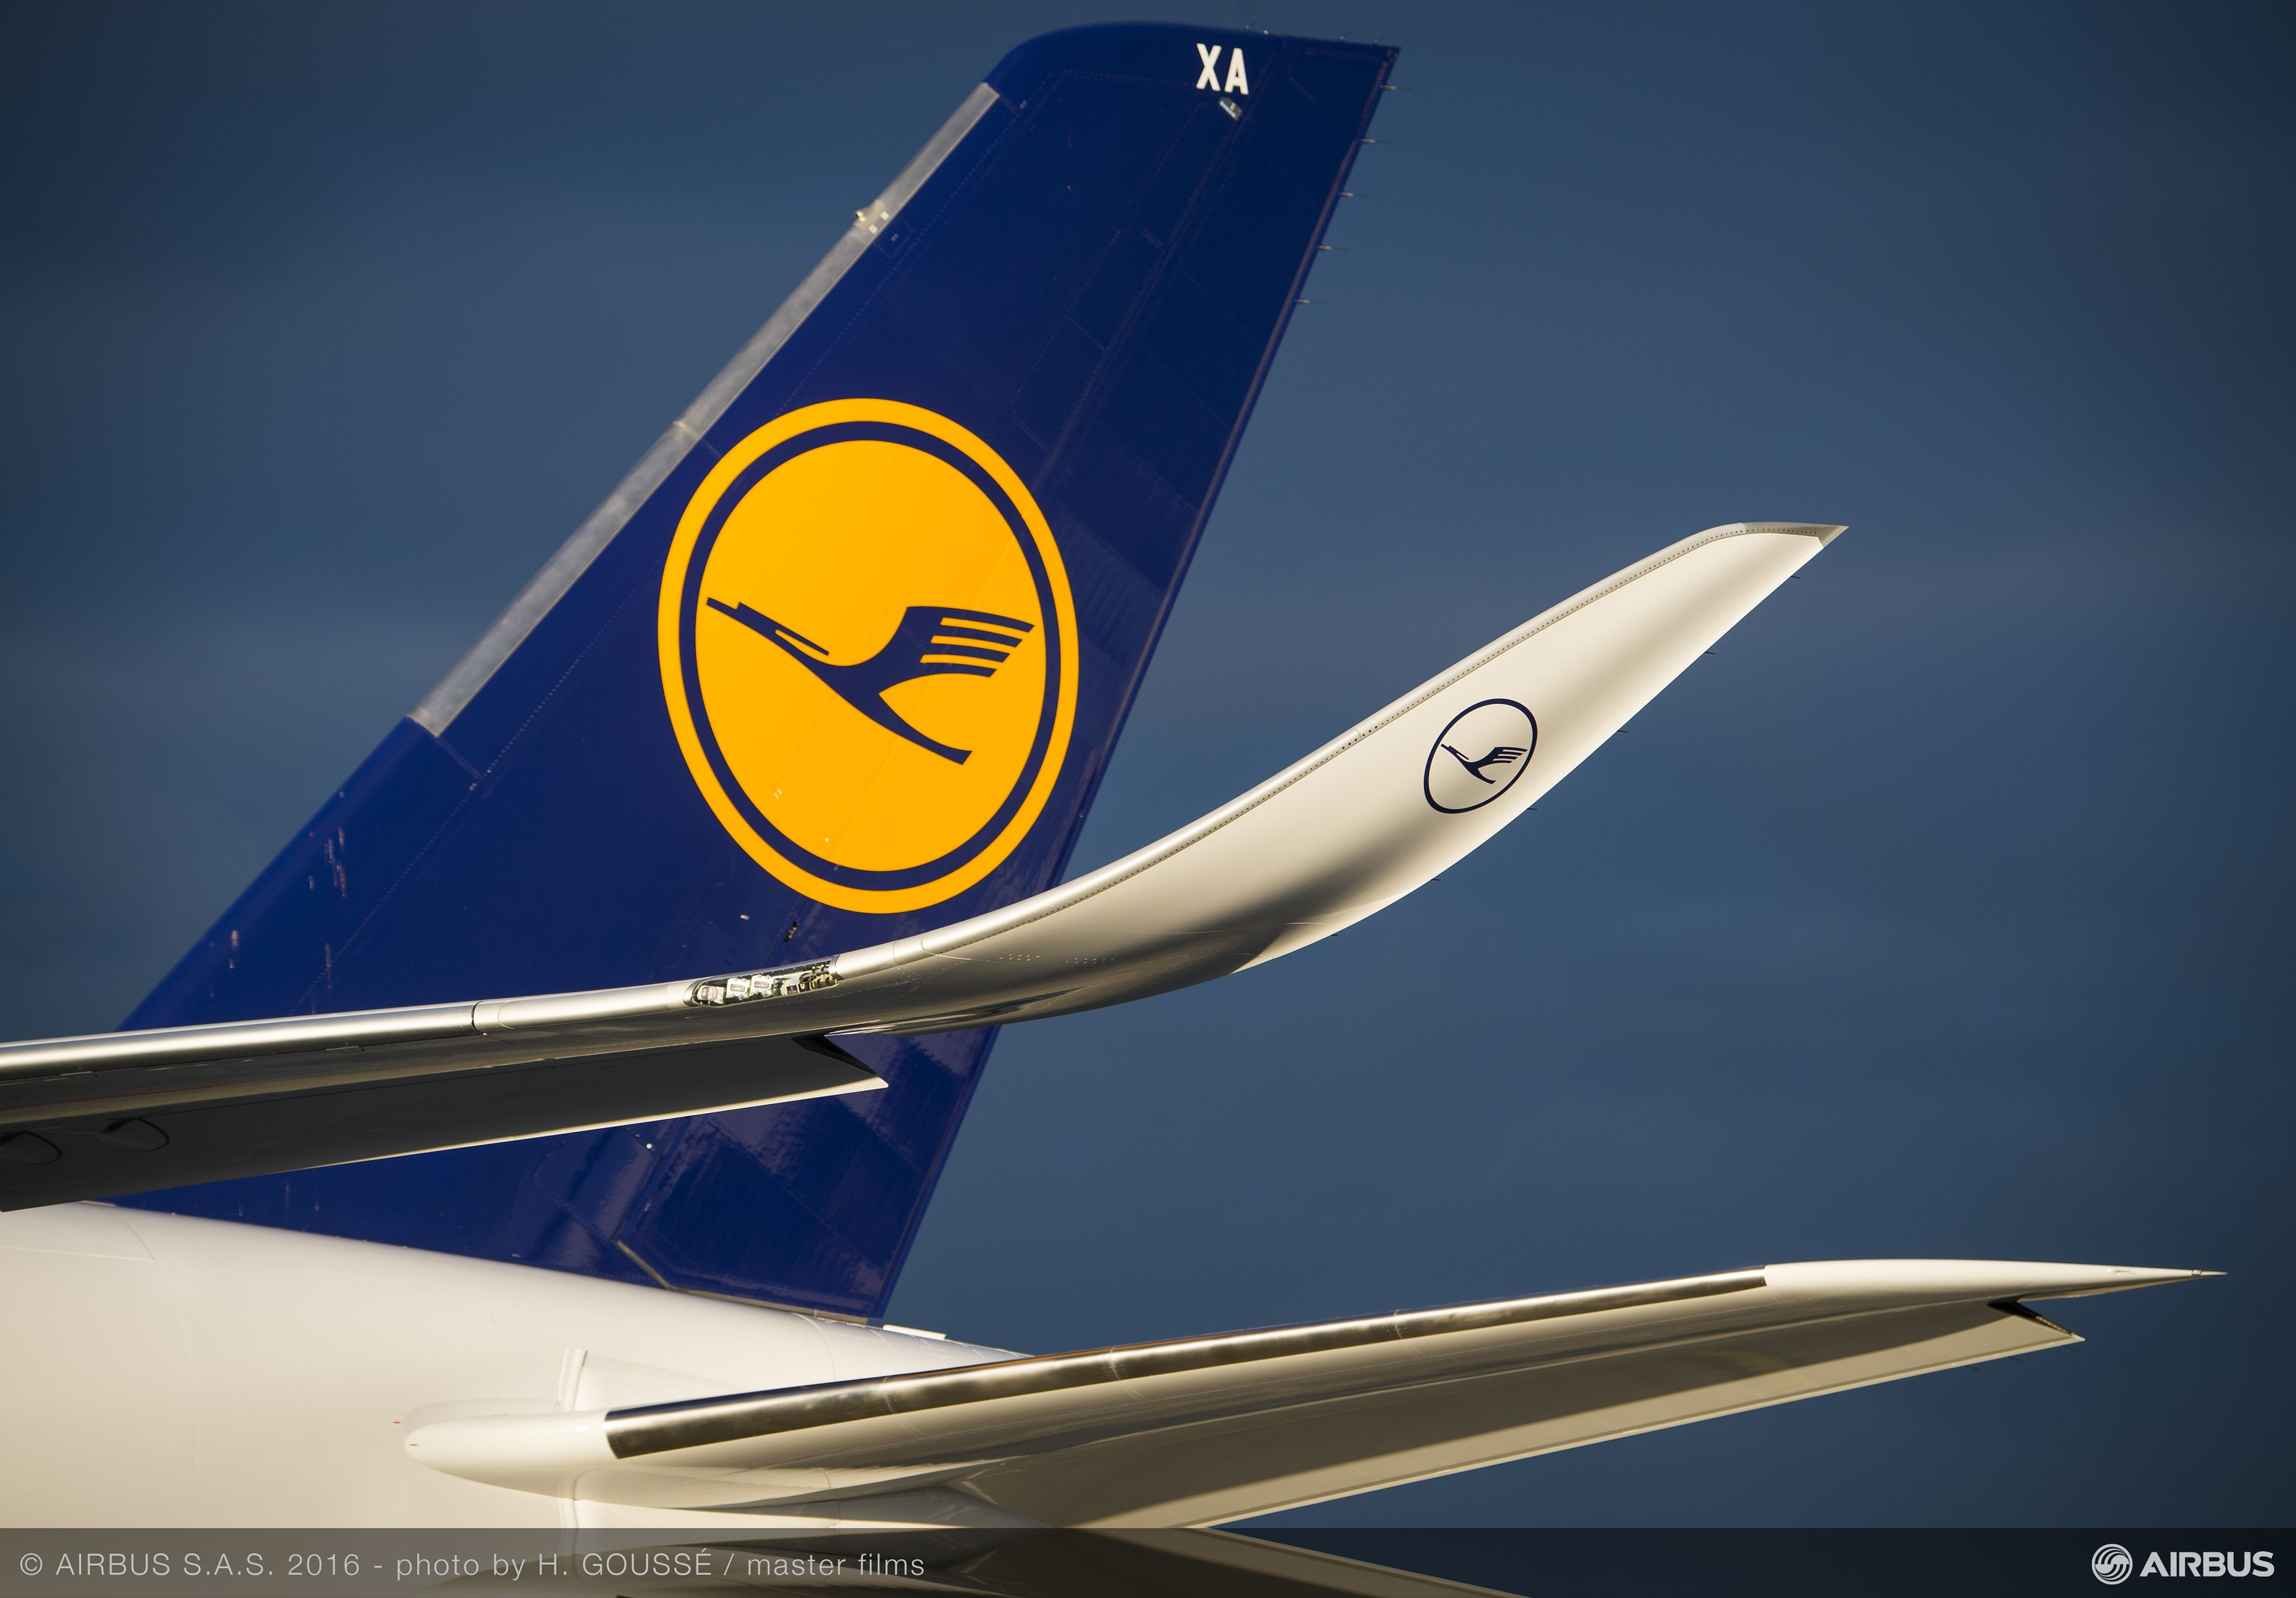 Herie Meets The Future Lufthansa S A New Brand Design